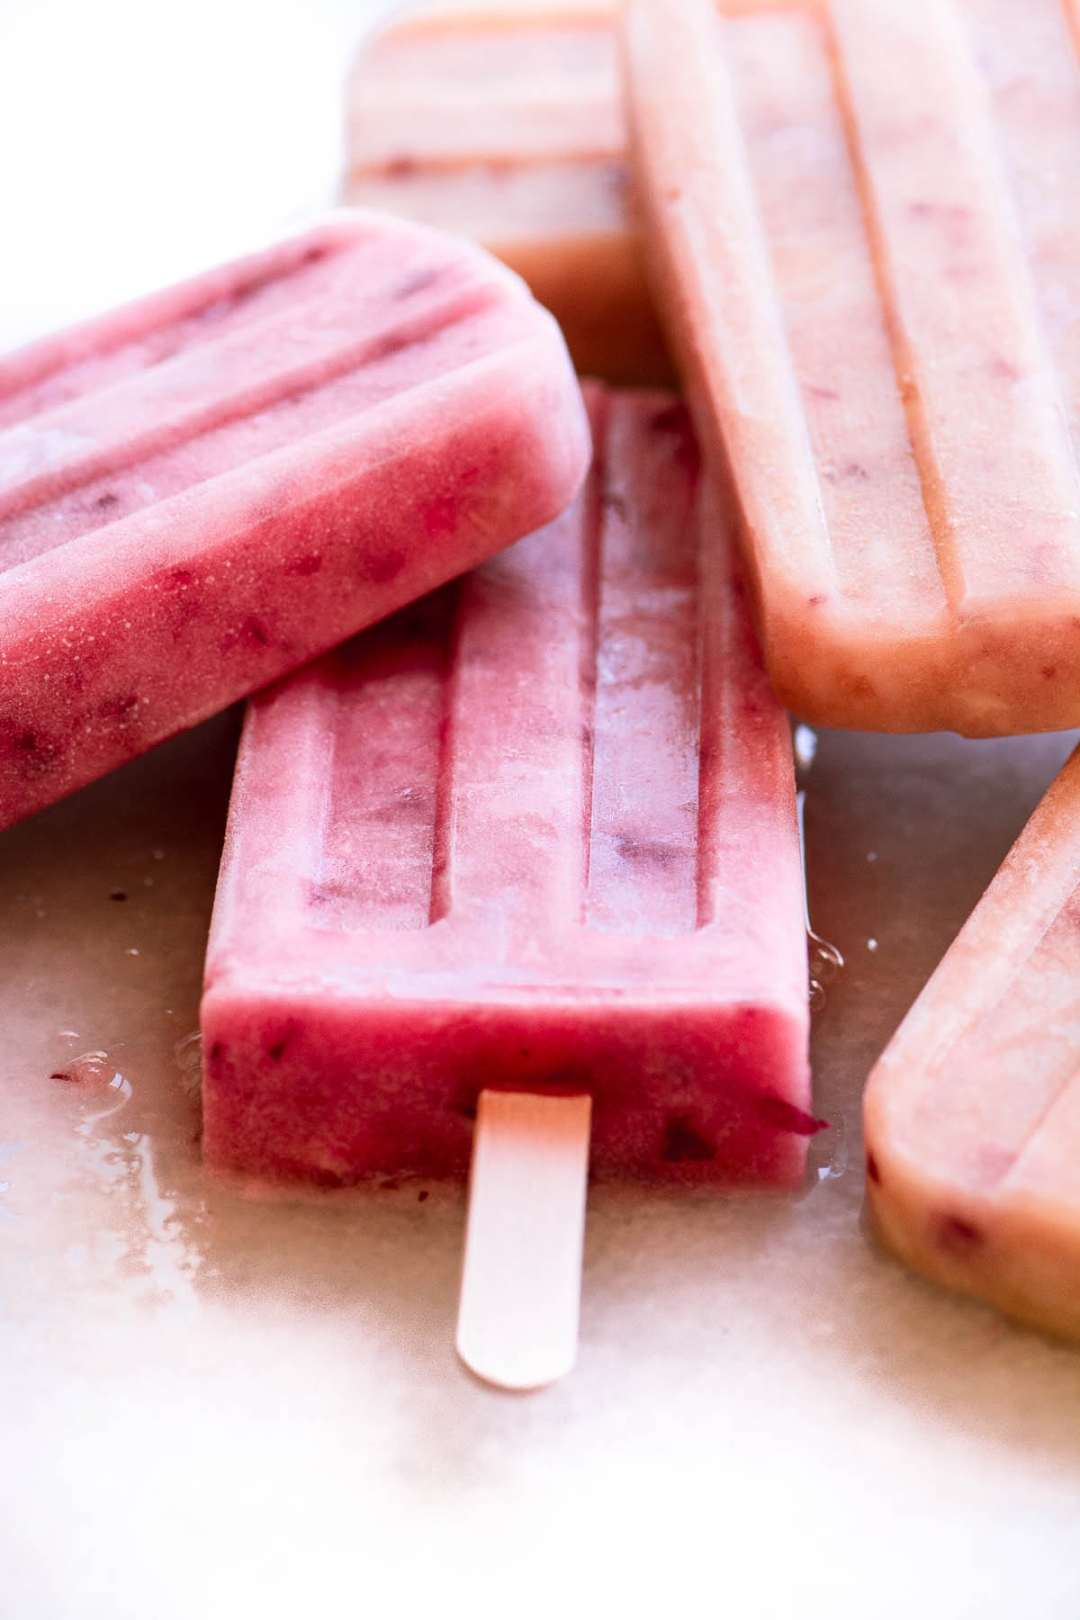 a stack of white peach popsicles